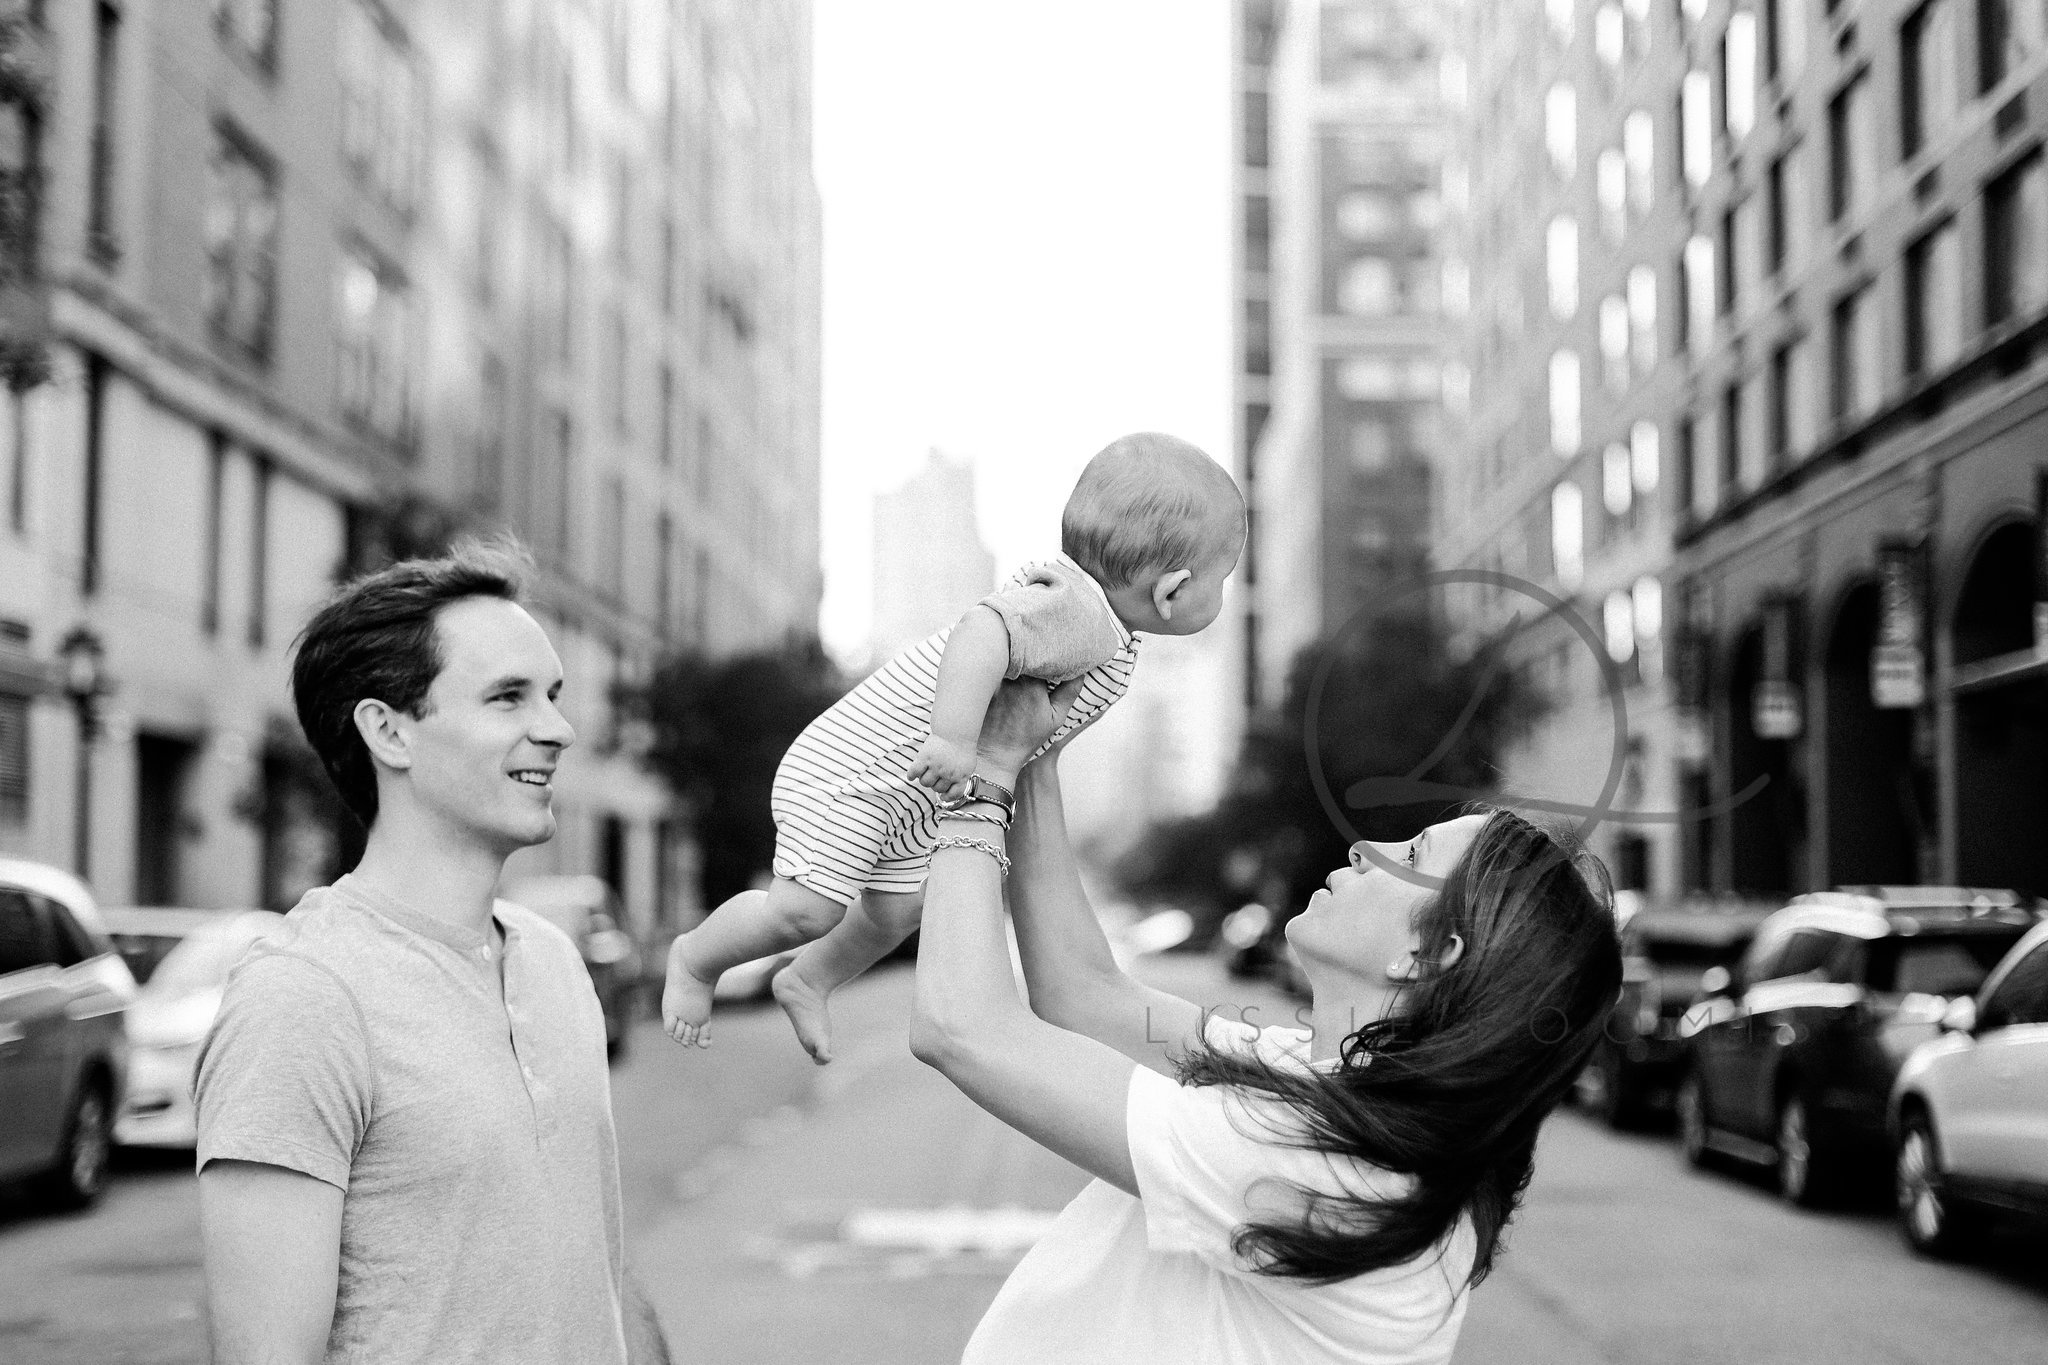 lissie-loomis-photo-newyorkcity-family-photography-baby-photographer-brooklyn9.JPG